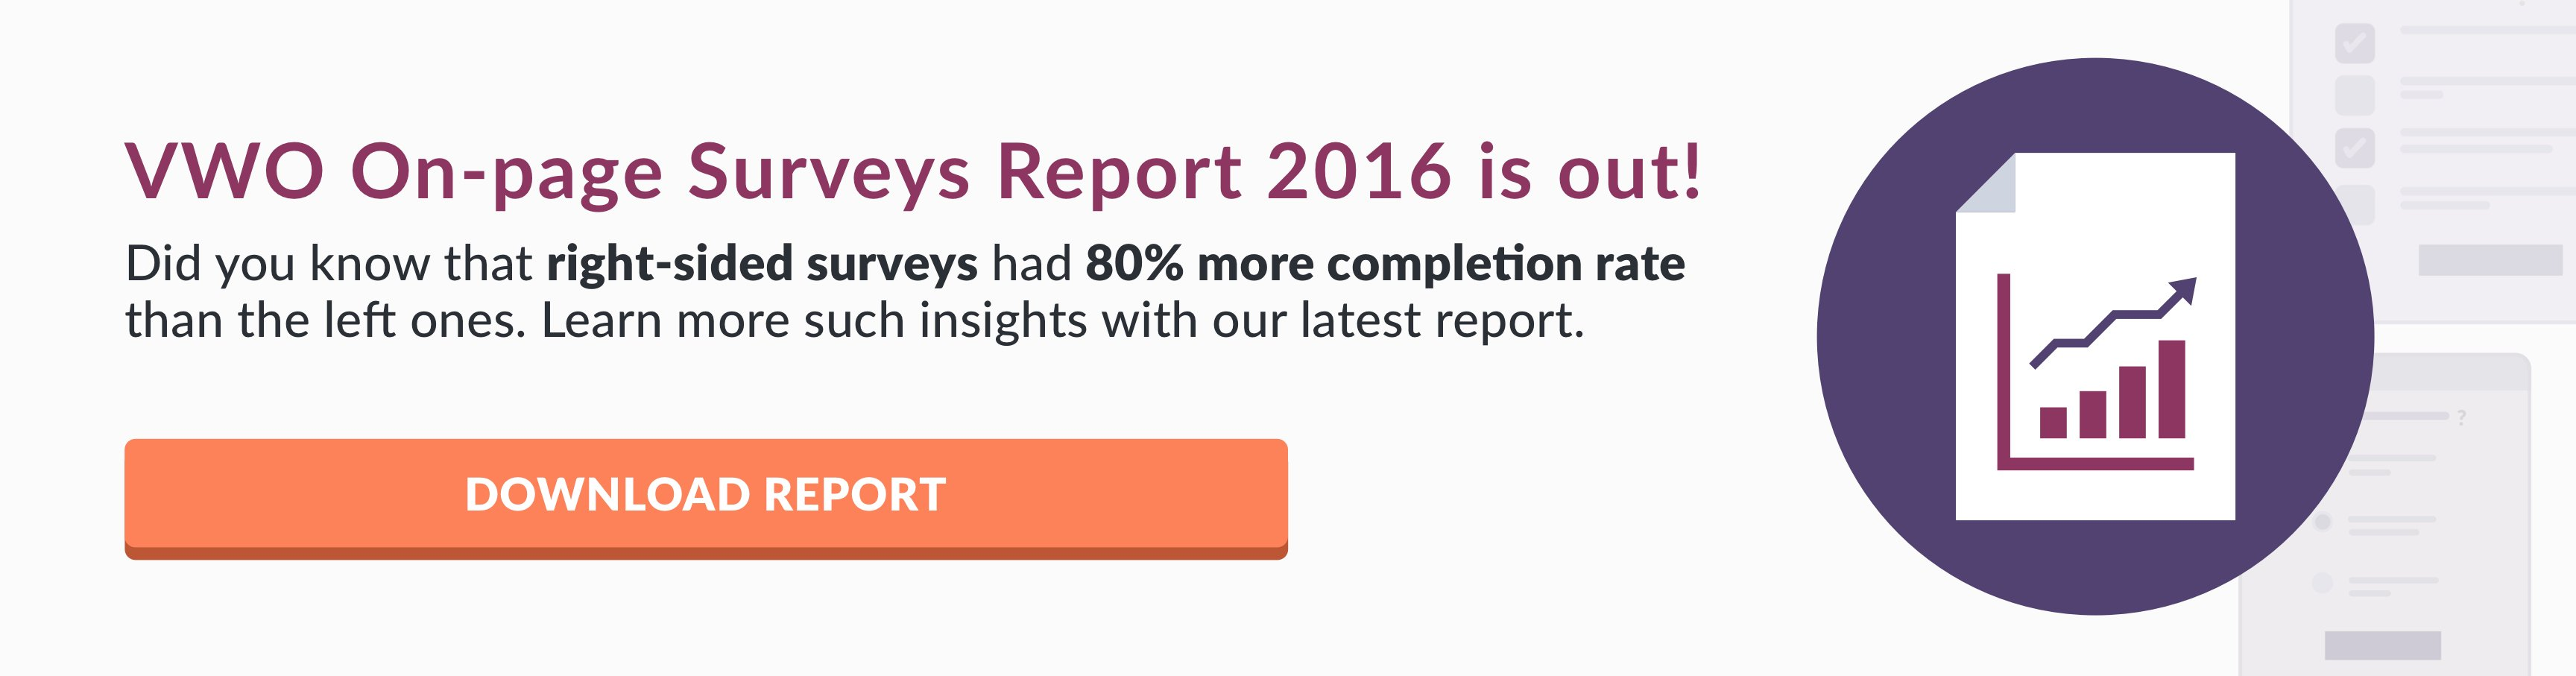 VWO On-Page Surveys Report 2016 CTA